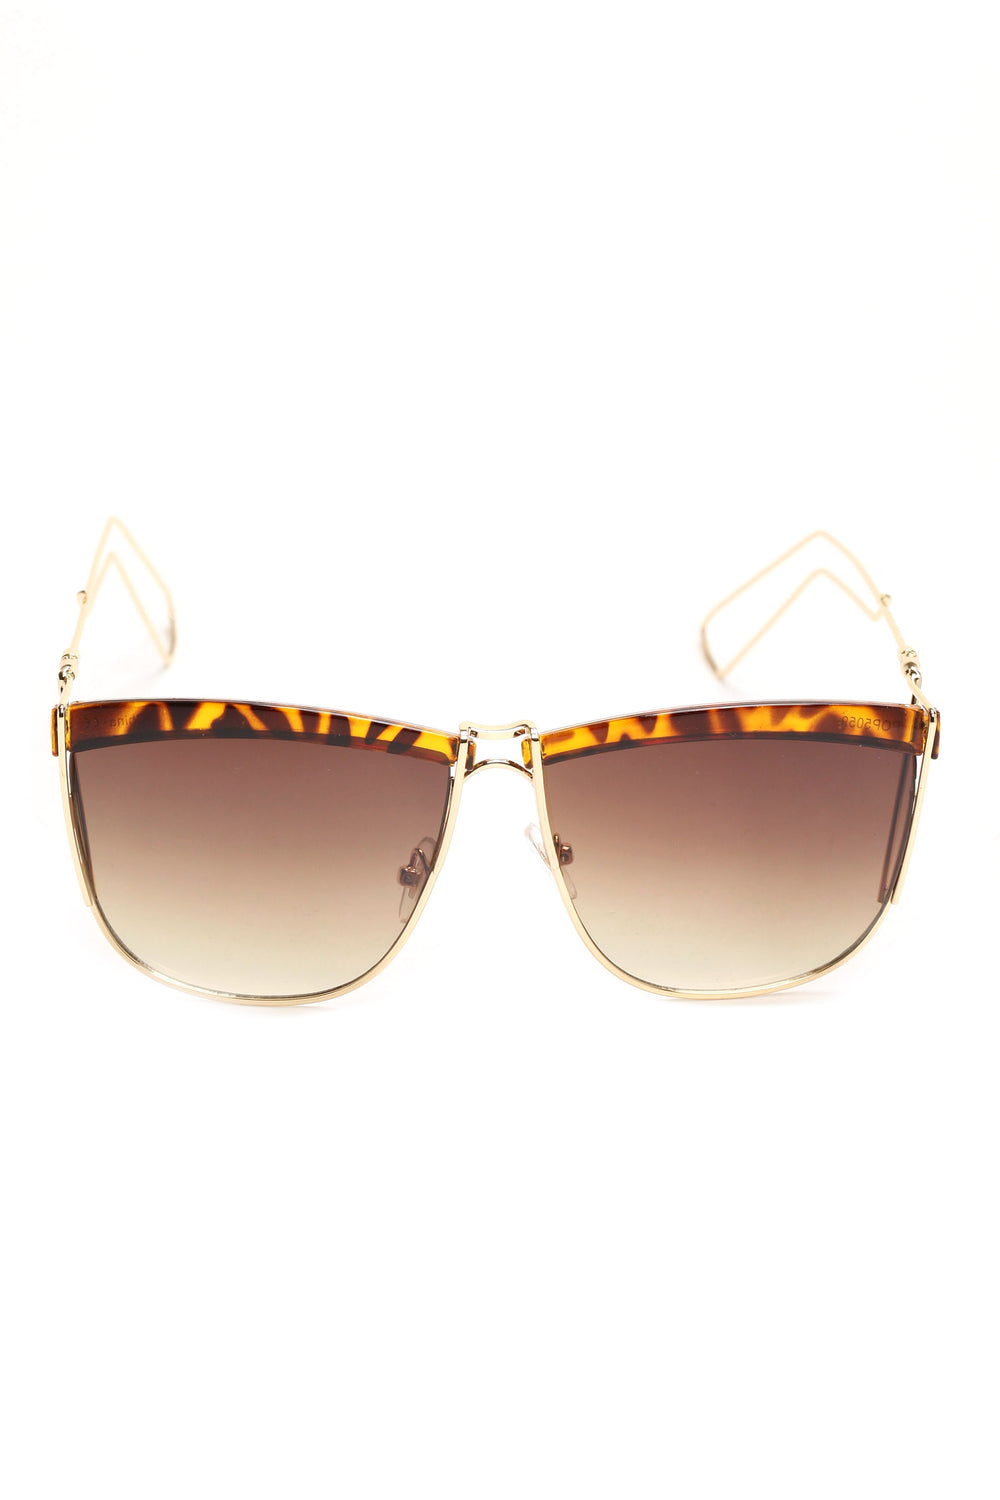 Just Do It Sunglasses - Tortoise/Brown